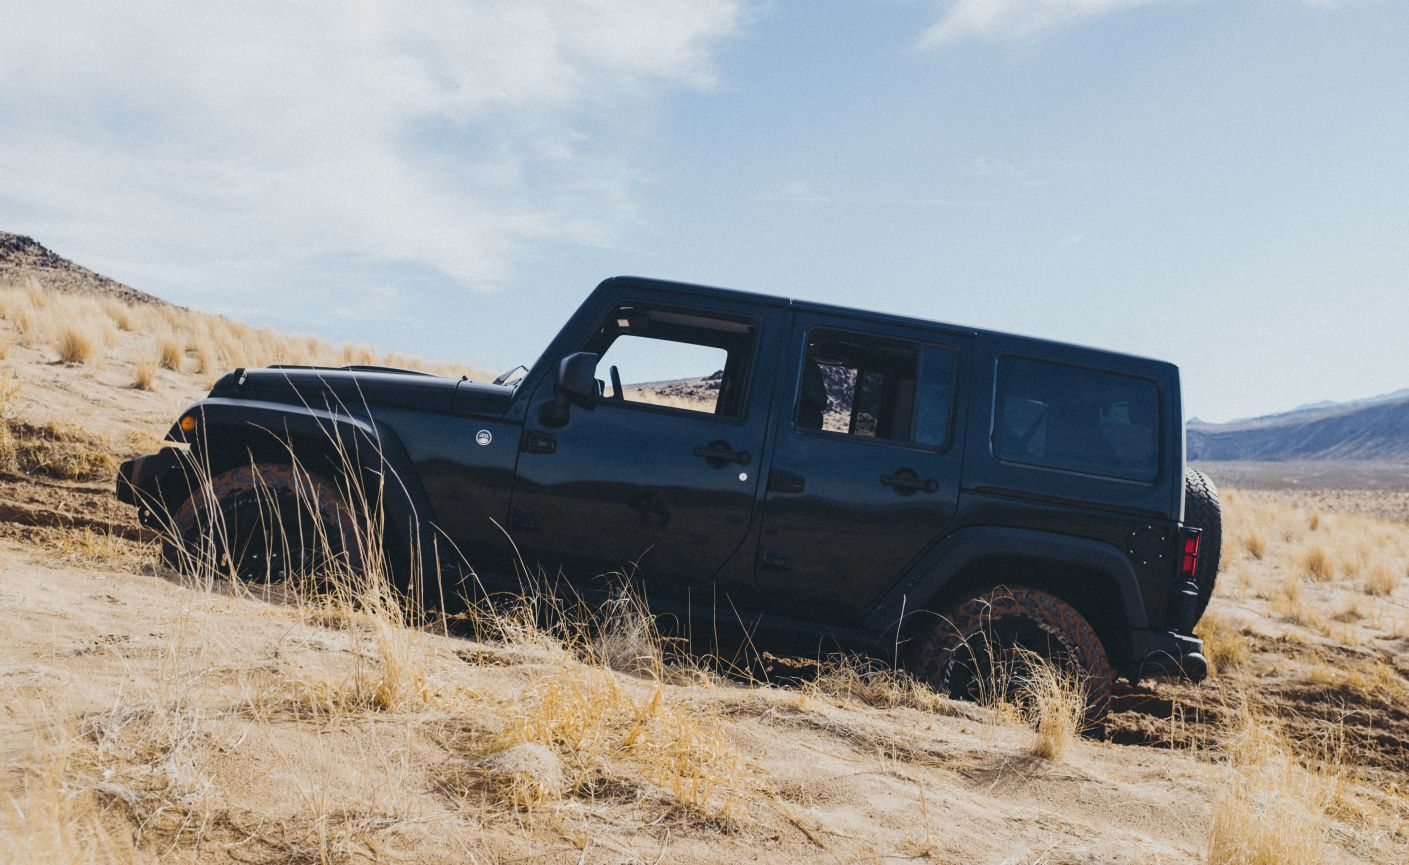 The Beginner's Guide to Building Your Dream Off-Road Vehicle